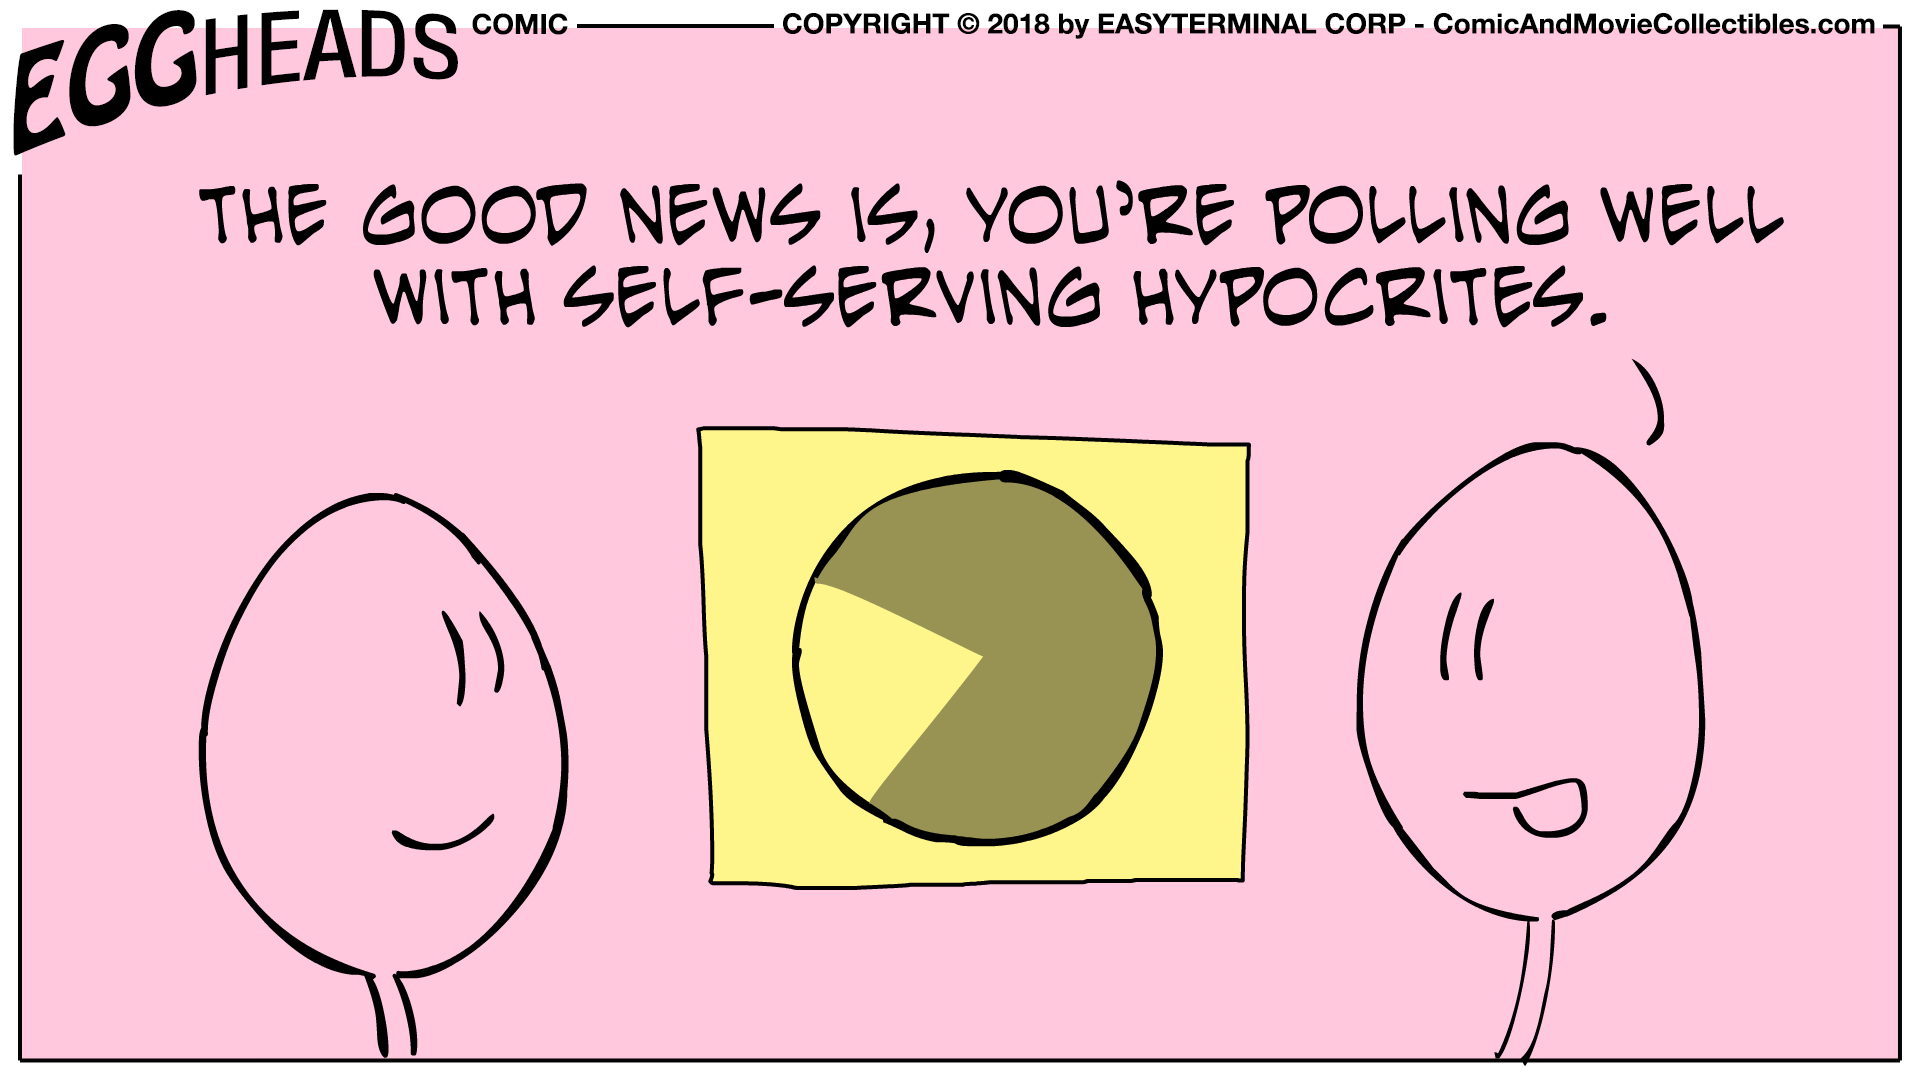 Webcomic Eggheads Comic Strip 007 Polling Well